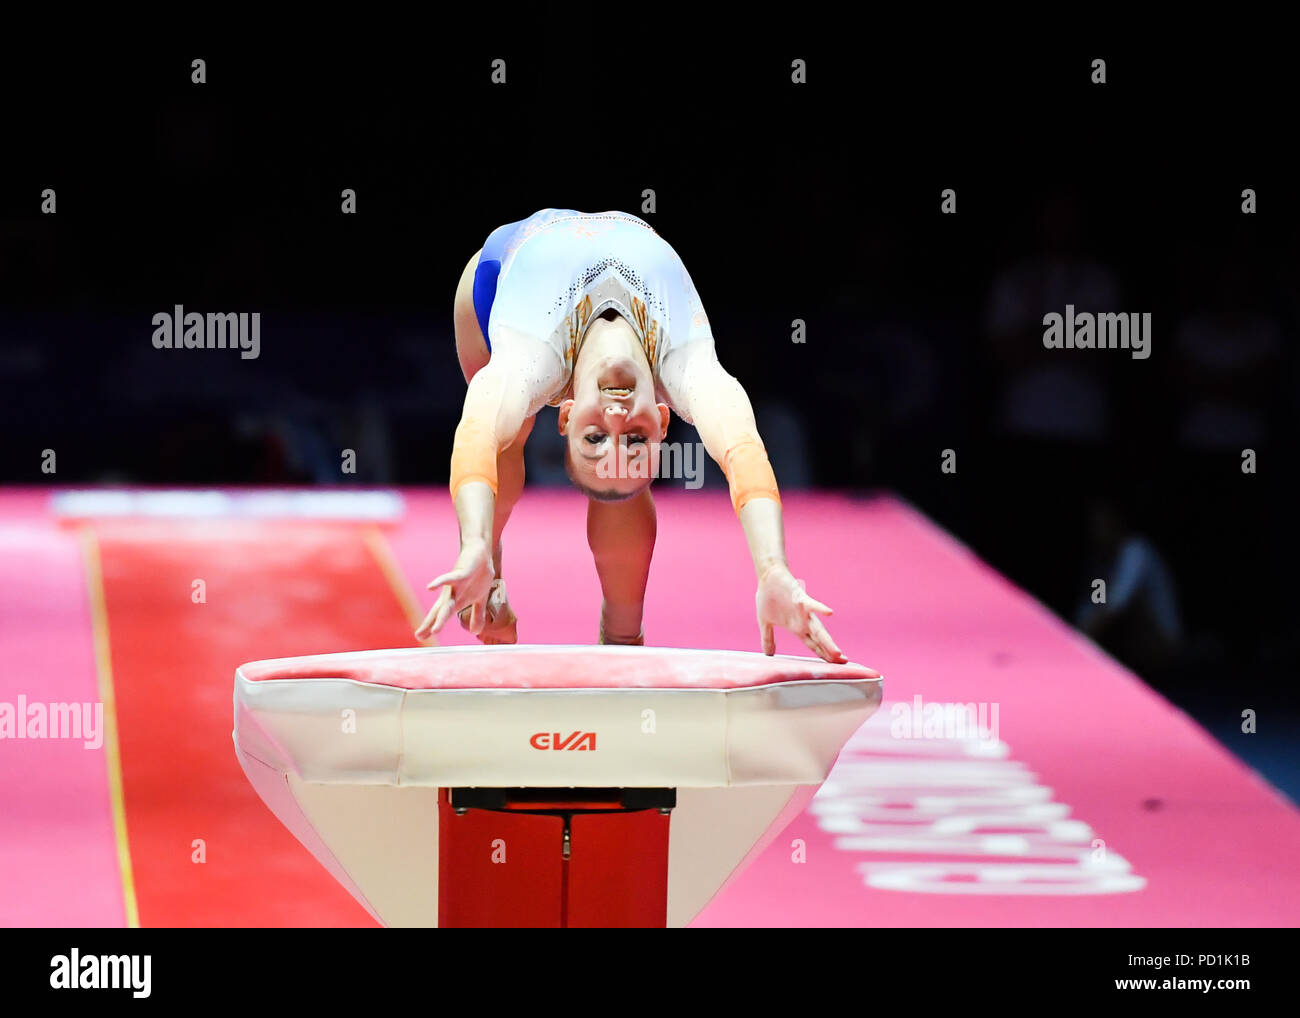 VOLLEMAN Tisha (NED) competes on the Vault in Women's Artistic Gymnastics Apparatus  Finals during the European Championships Glasgow 2018 at The SSE Hydro on Sunday, 05 August 2018. GLASGOW SCOTLAND . Credit: Taka G Wu - Stock Image